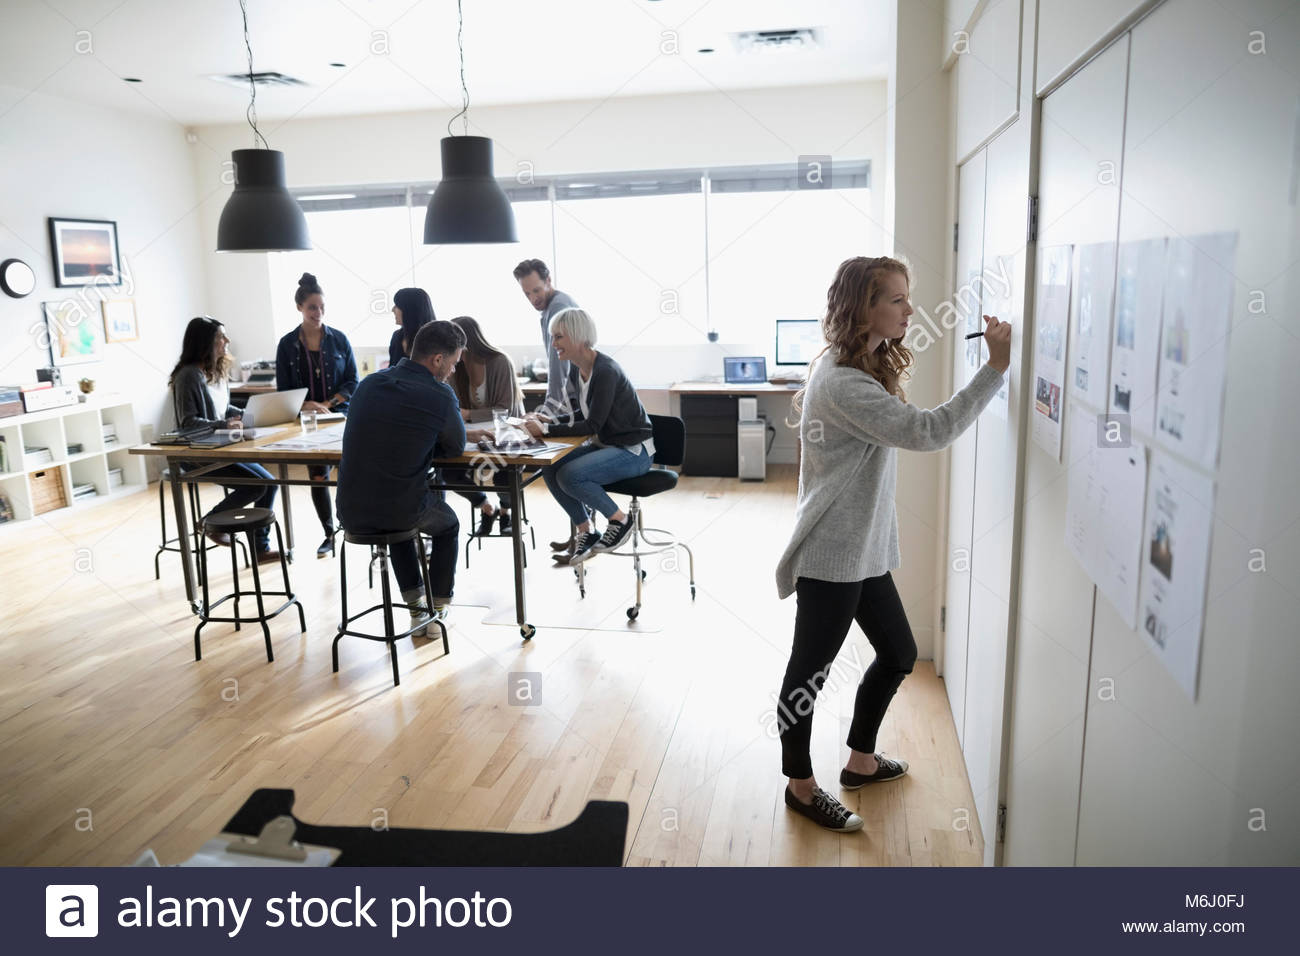 Female photo editor with digital tablet editing photo proofs hanging on office wall - Stock Image